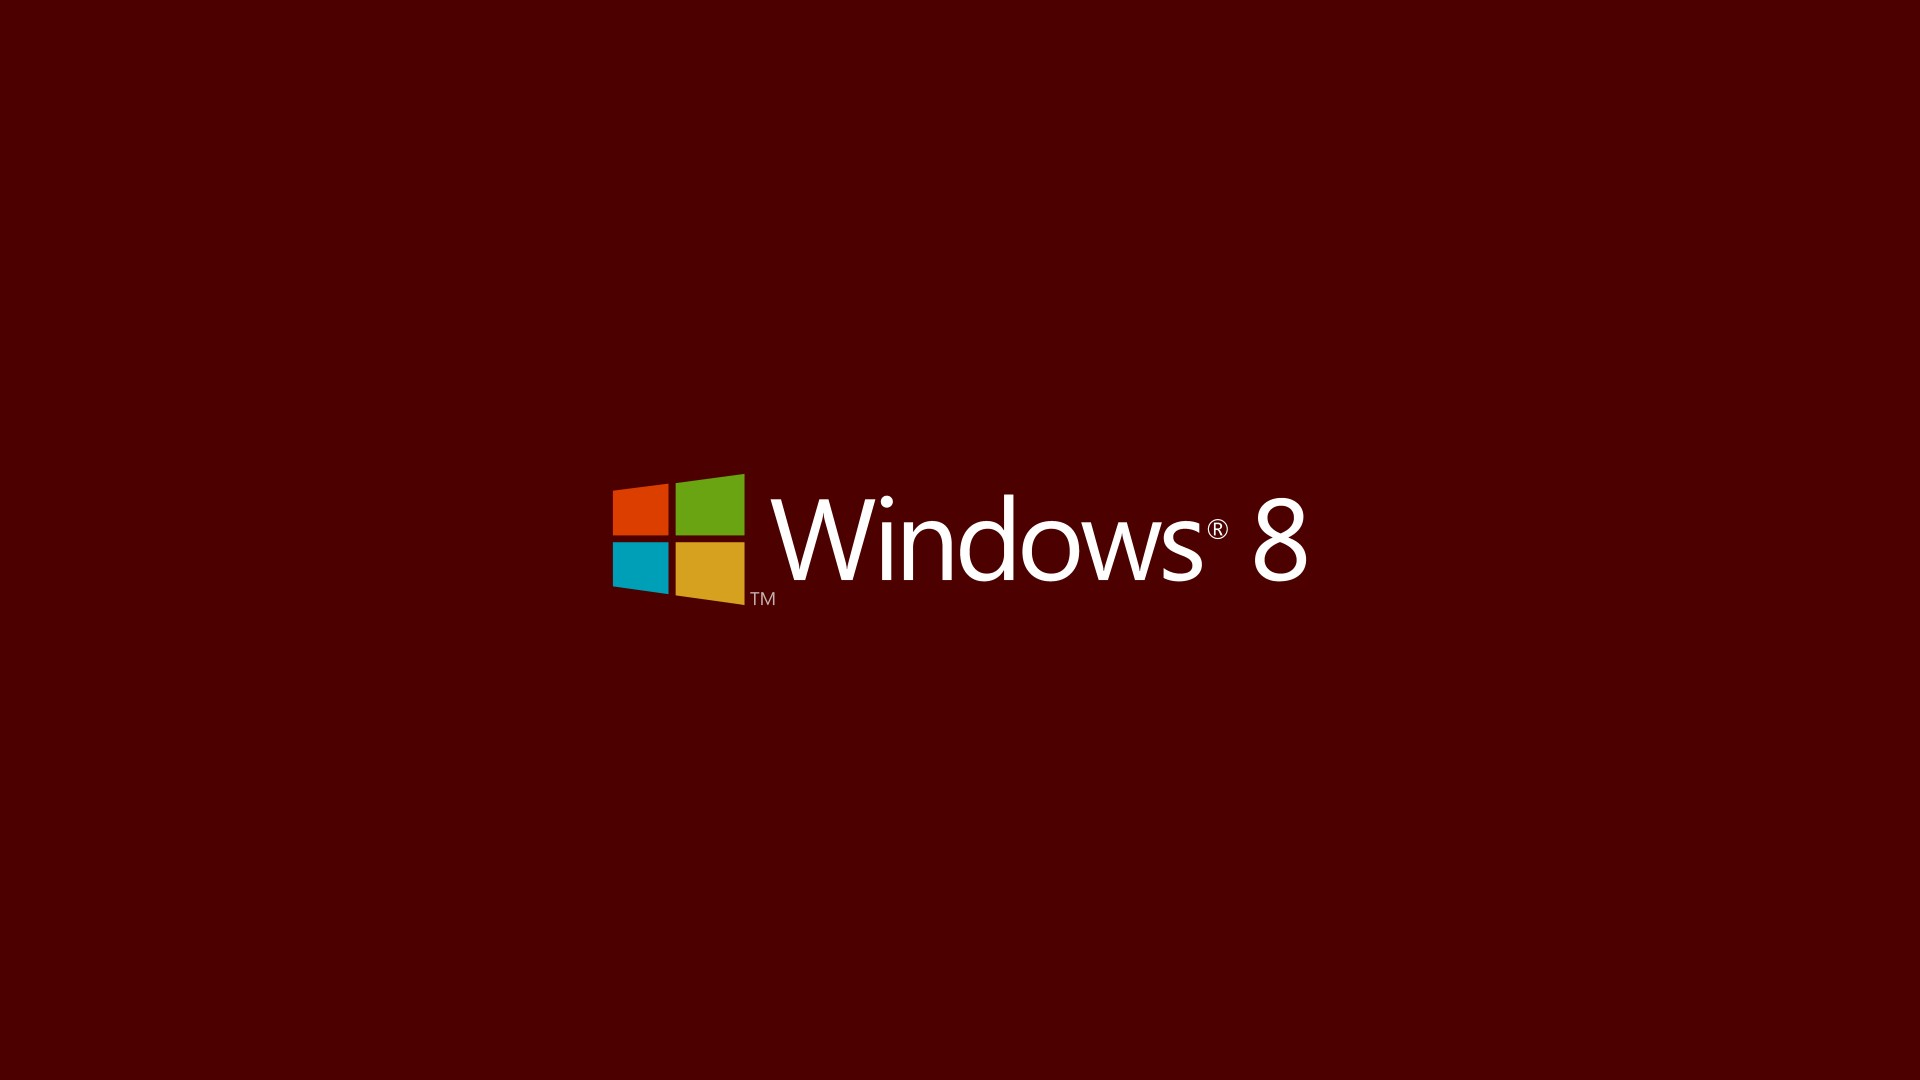 microsoft windows wallpapers by gifteddeviant - photo #6